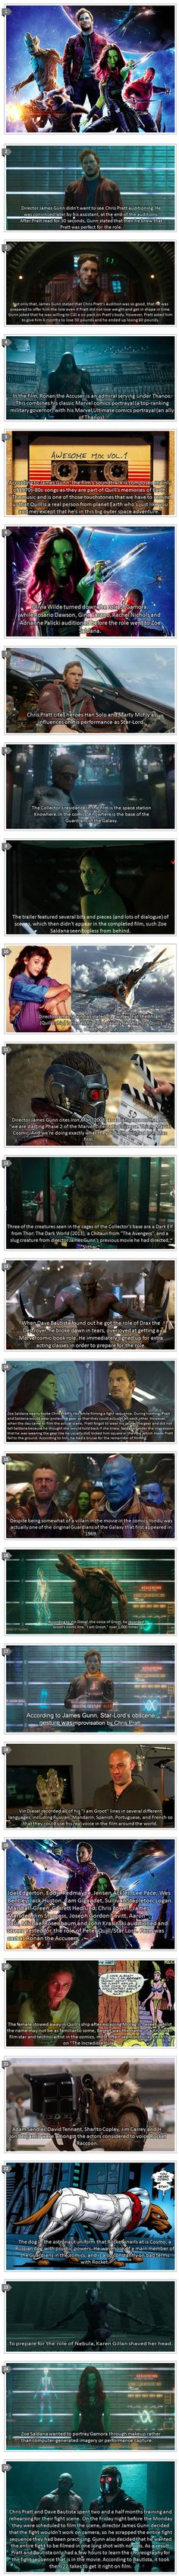 Film Facts for Guardians of the Galaxy